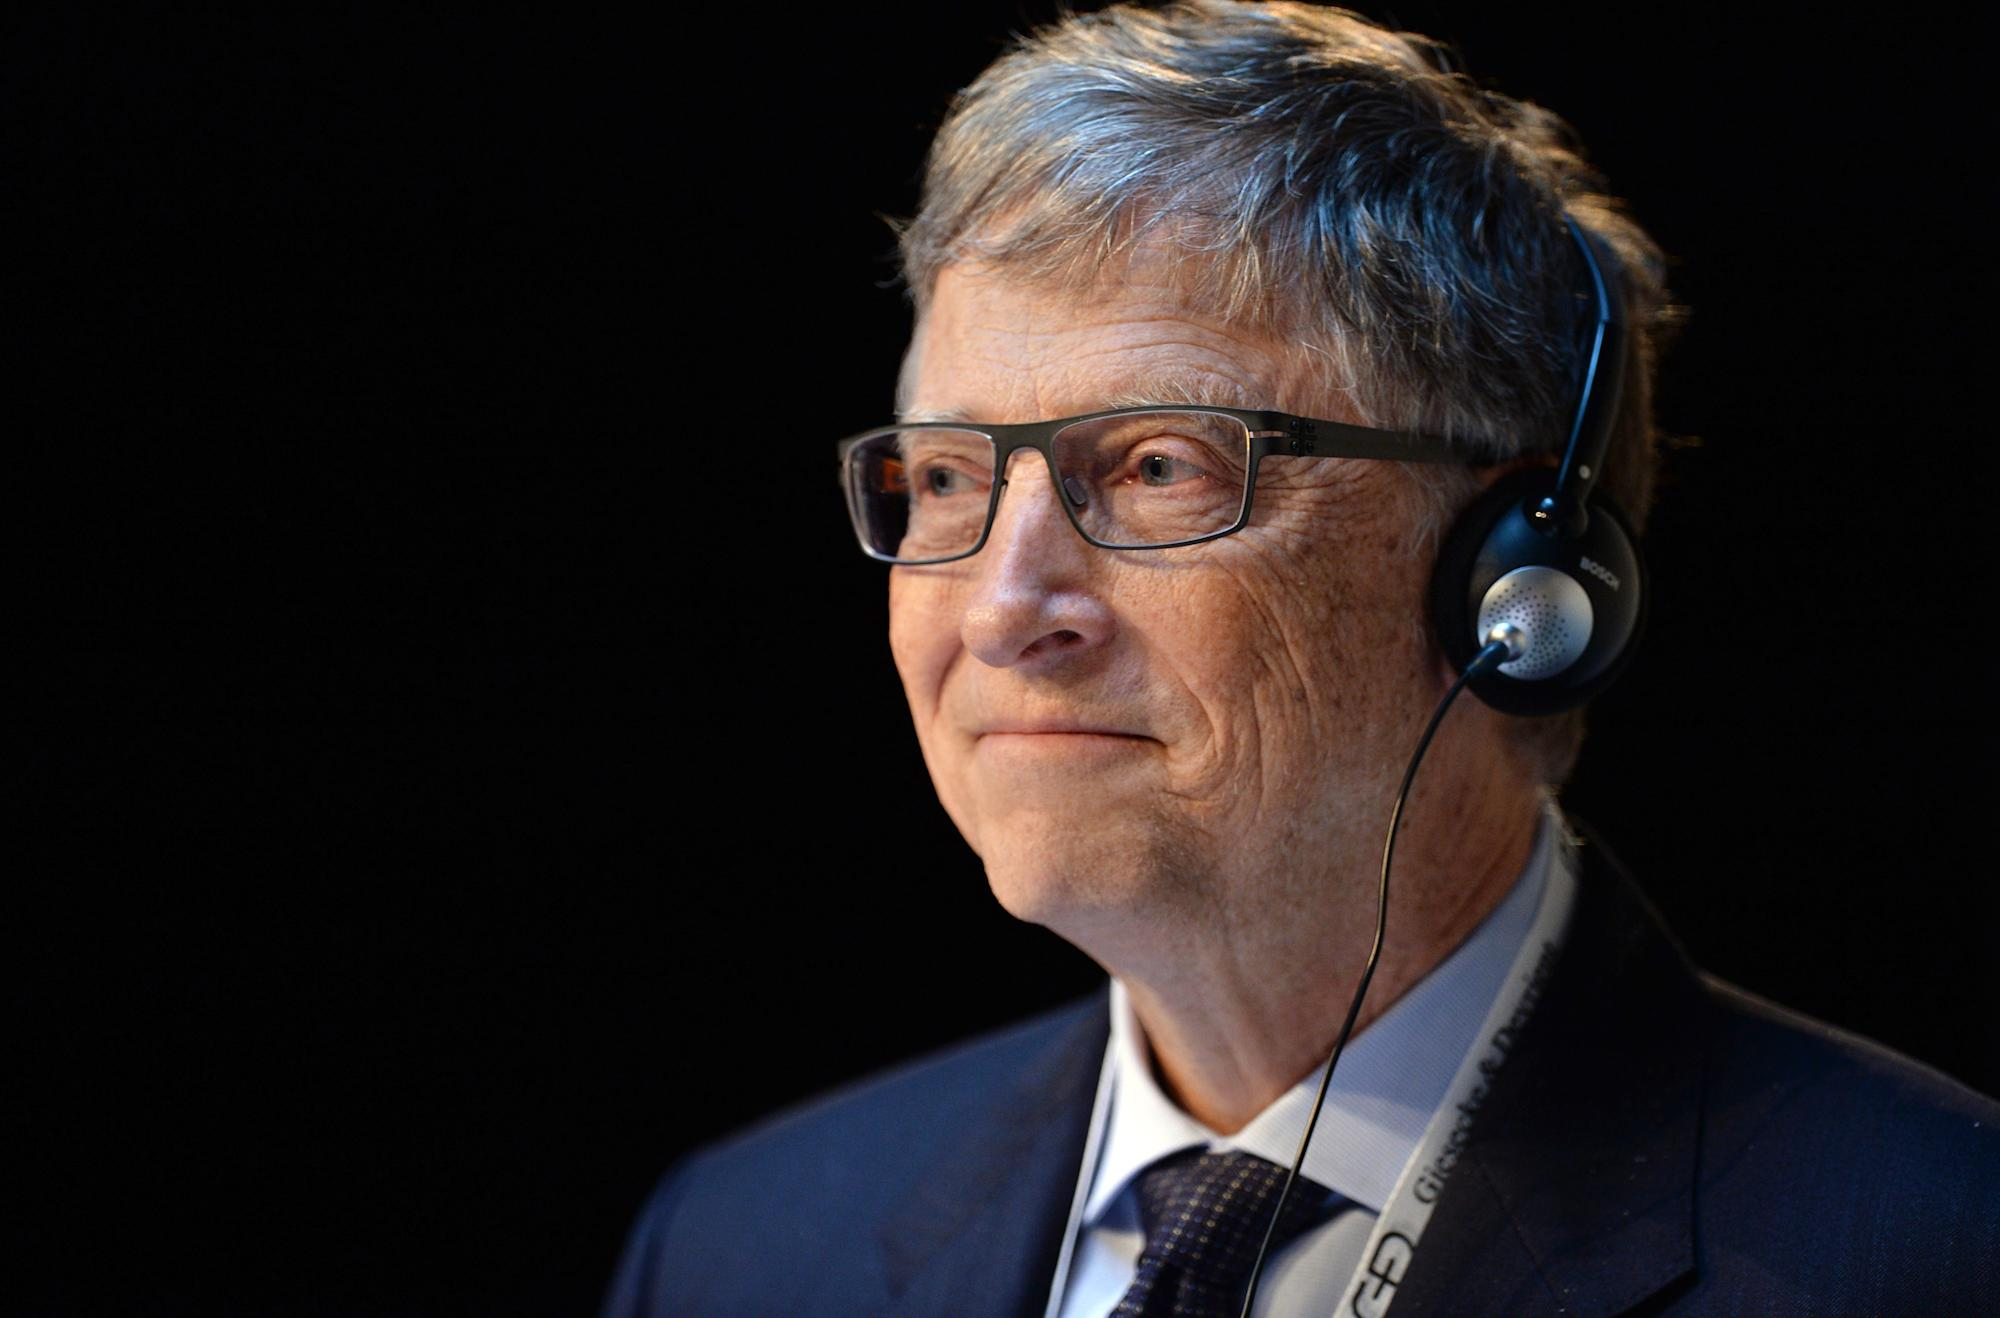 Bill Gates spends 3 hours a day doing this thing during holidays